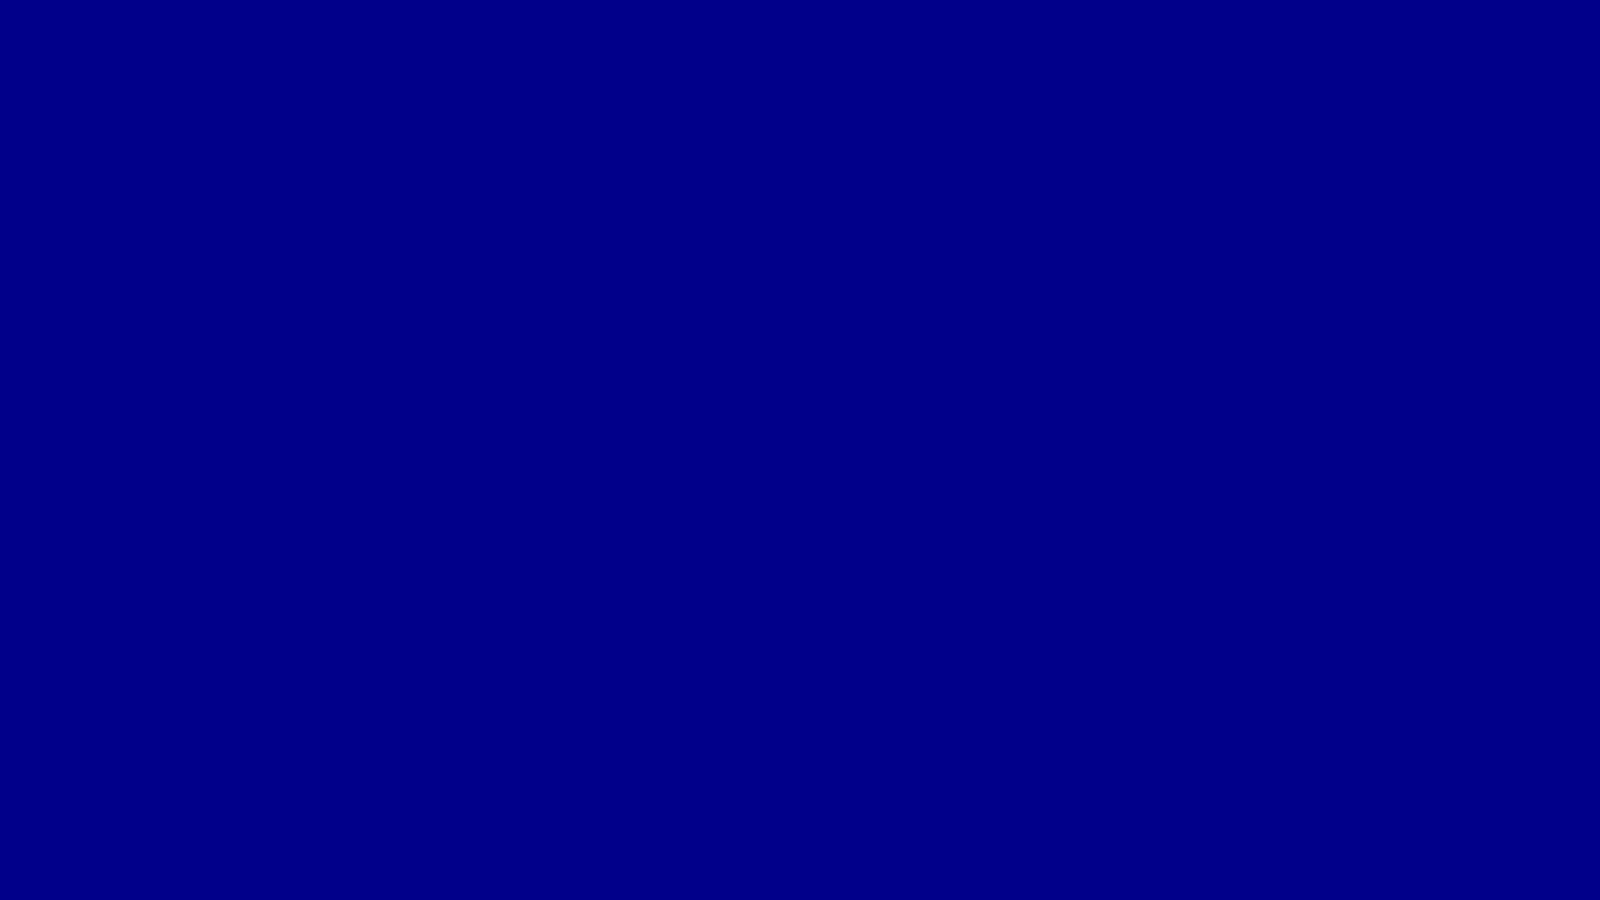 1600x900 dark blue solid color background